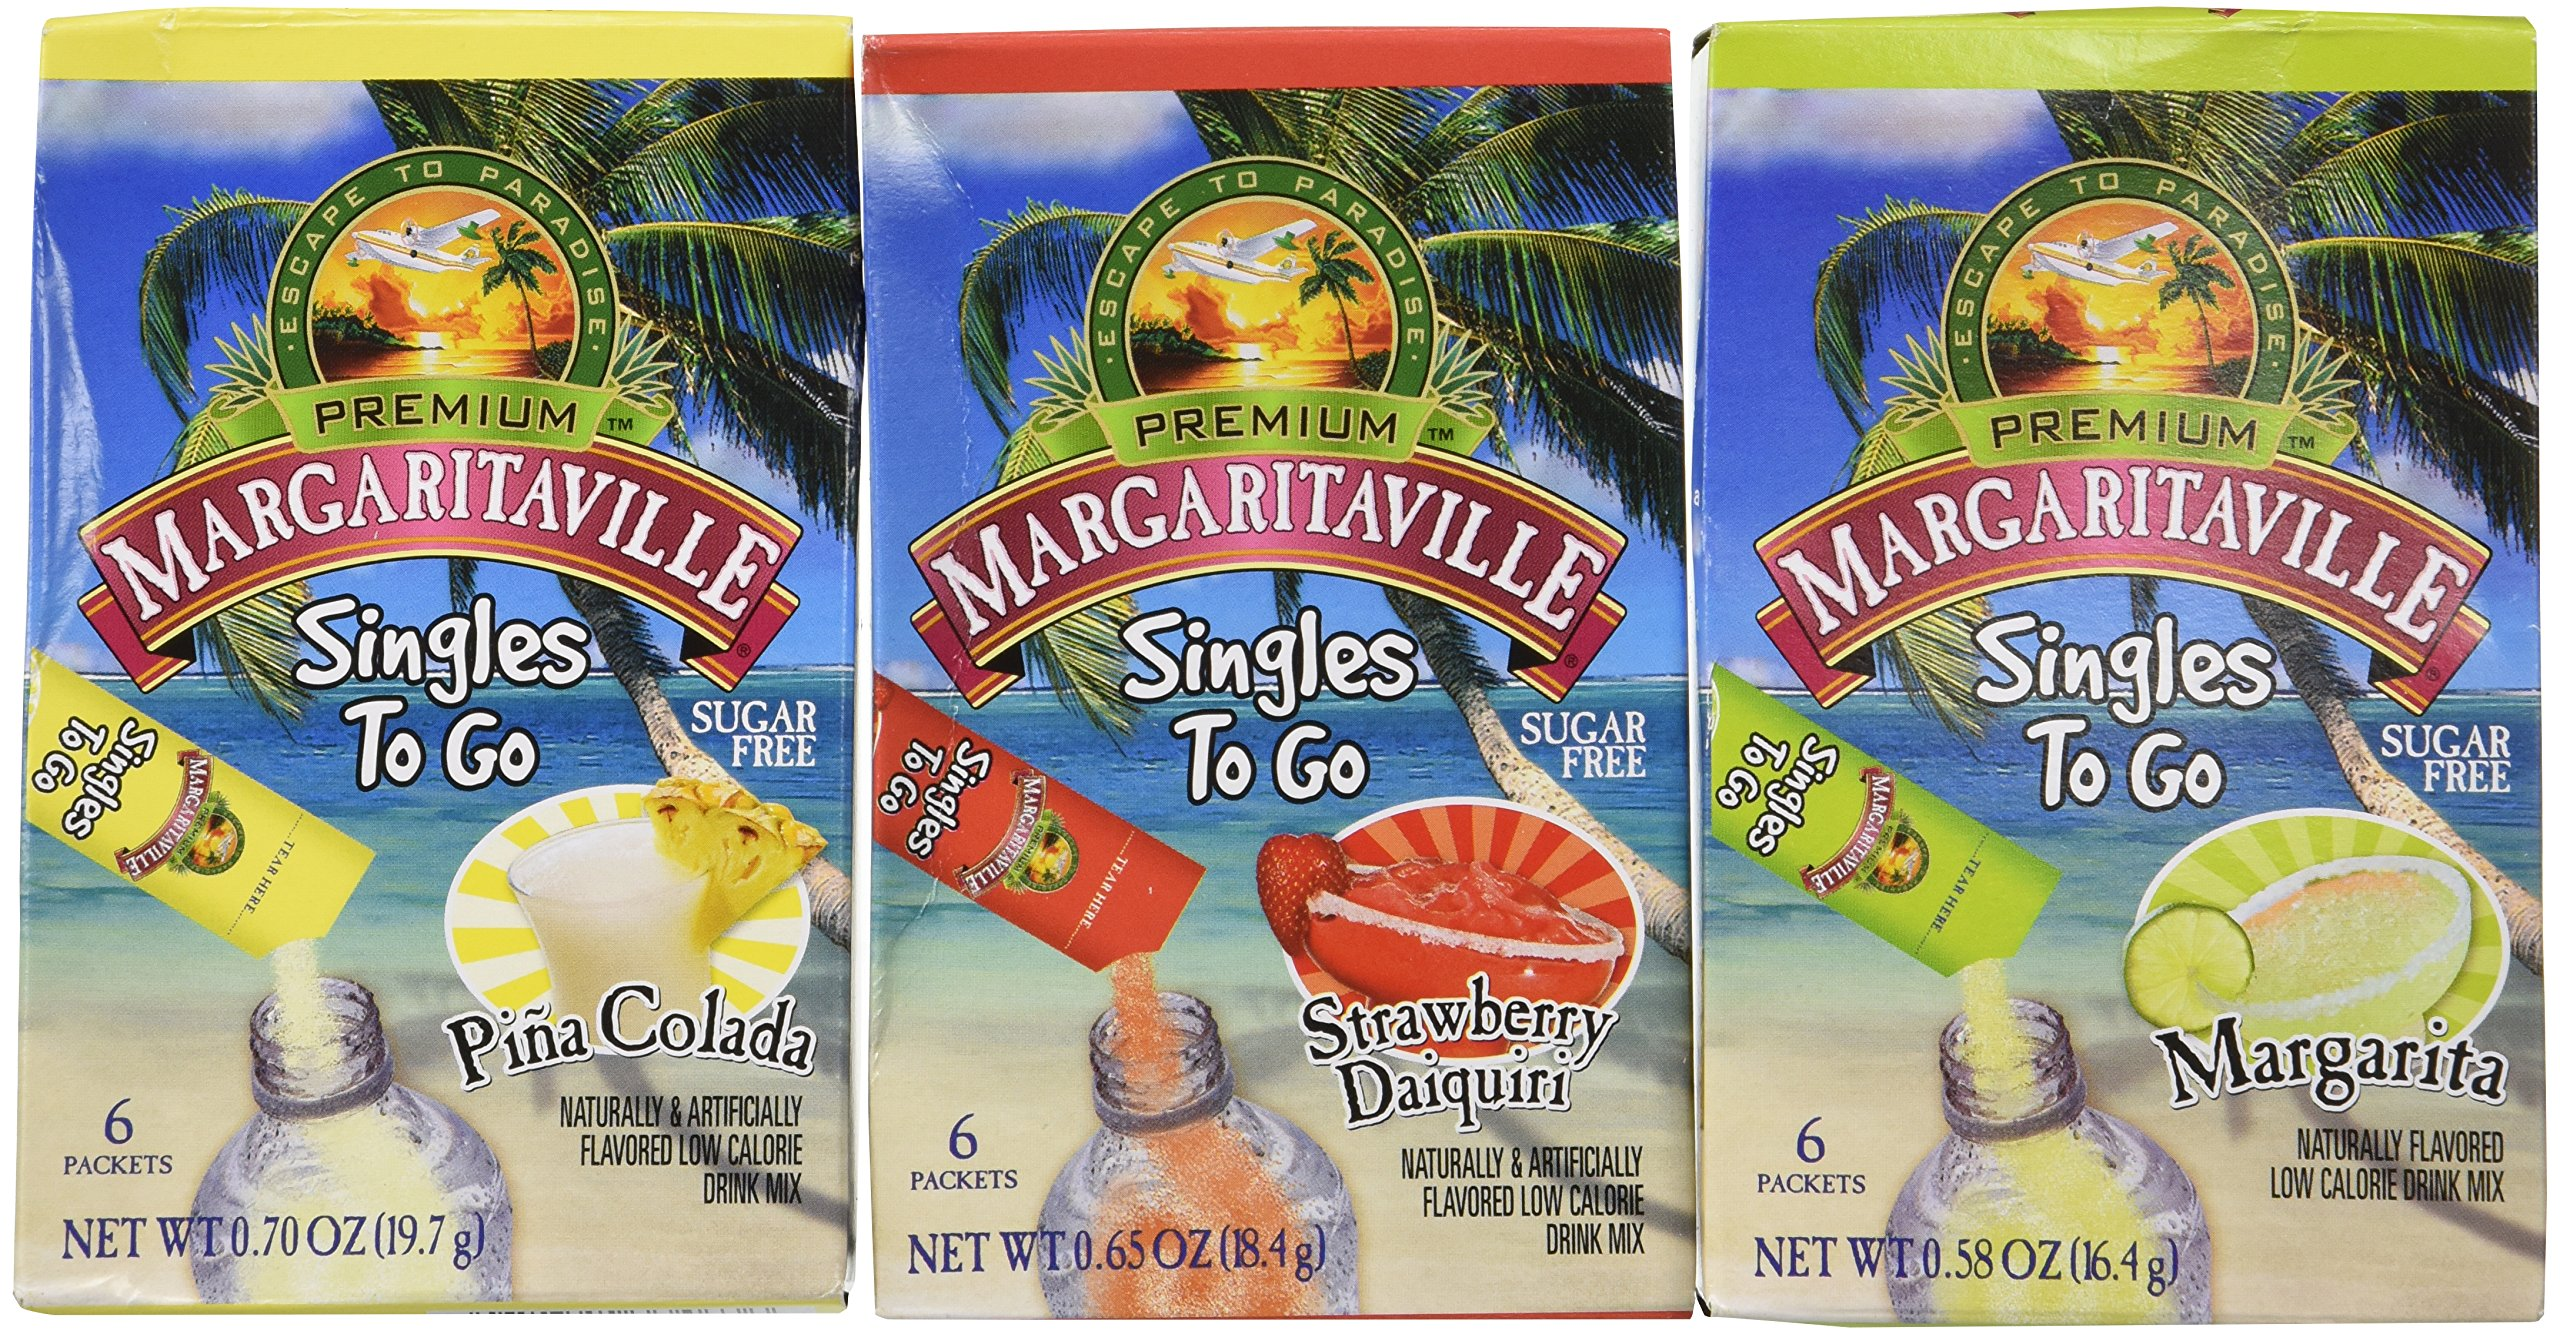 Margaritaville Singles To Go Drink Mix Ultimate Summer Variety Party Bundle Margarita, Pina Colada & Strawberry Daiquiri, (18 Piece Assortment)